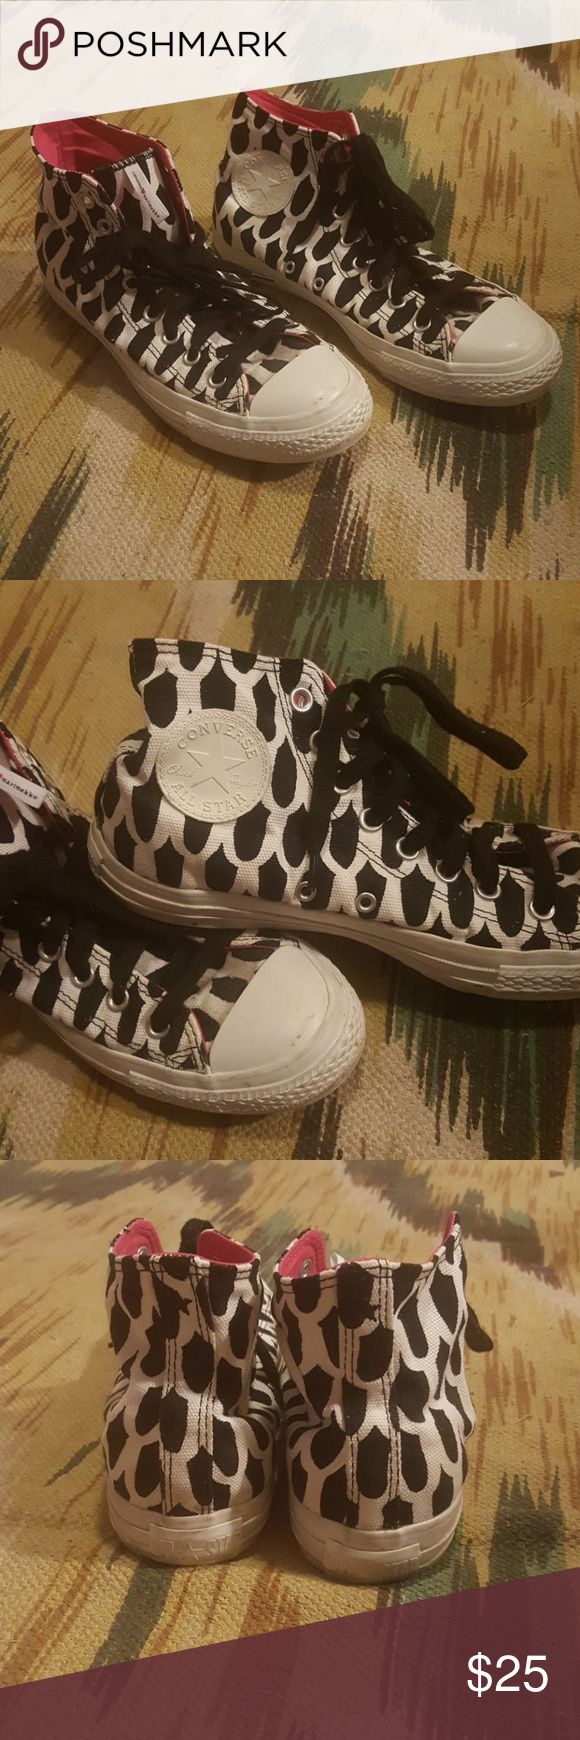 Converse Marimekko High top Marimekko converse, black and white exterior, pink interior, gently used, very good condition Converse Shoes Sneakers